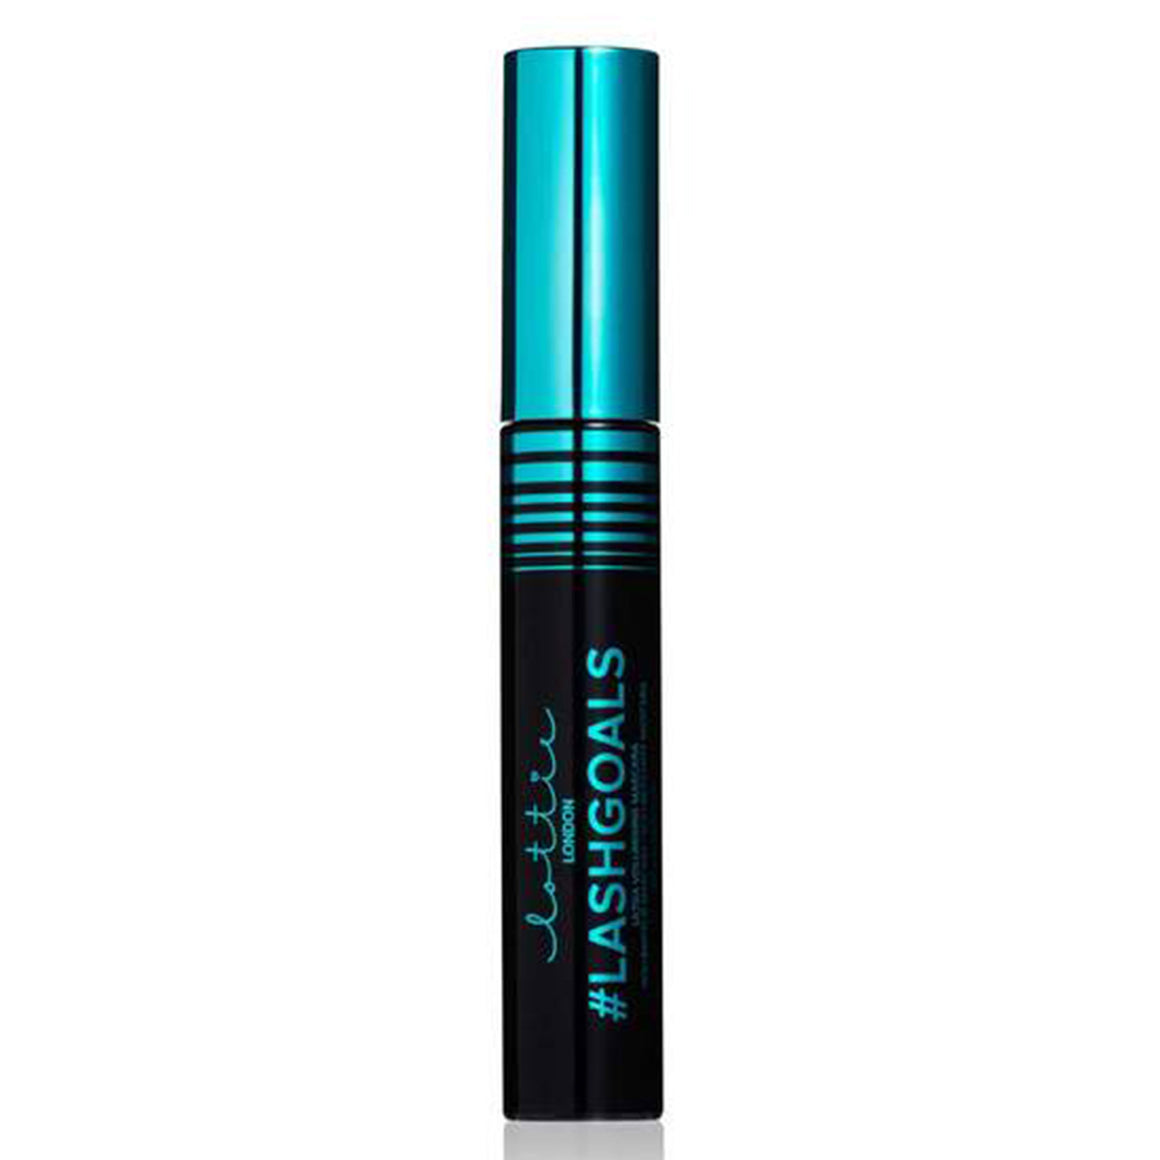 Lottie London - Lashgoals Ultra Volumising Mascara 12ml